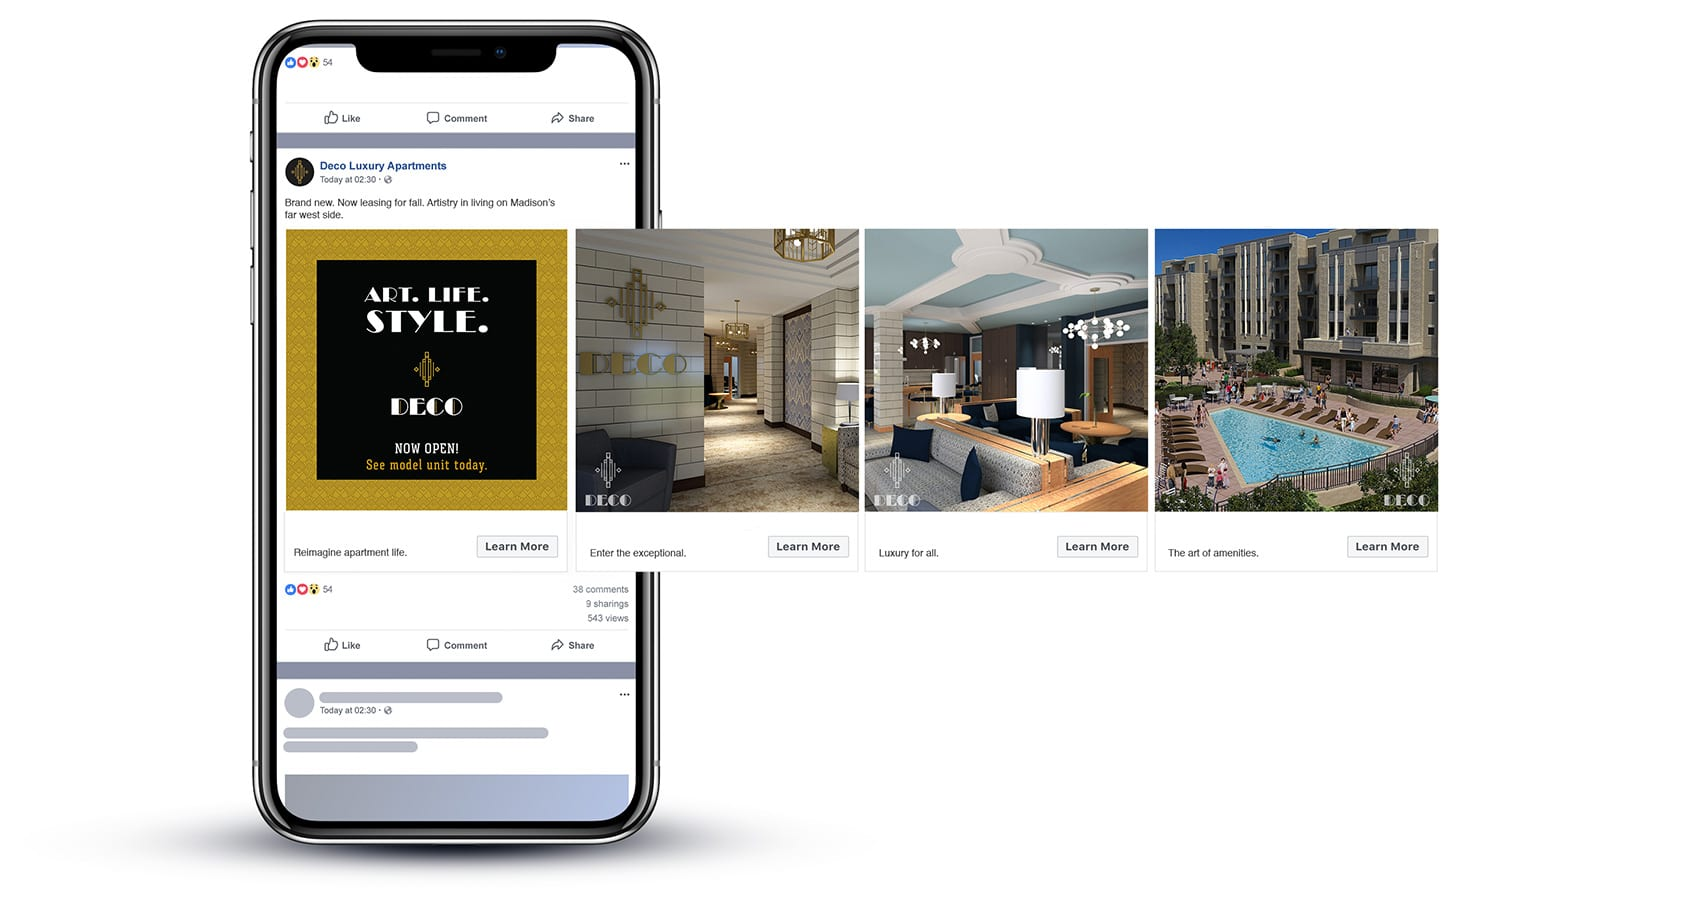 Facebook carousel advertisement for Deco apartments grand opening